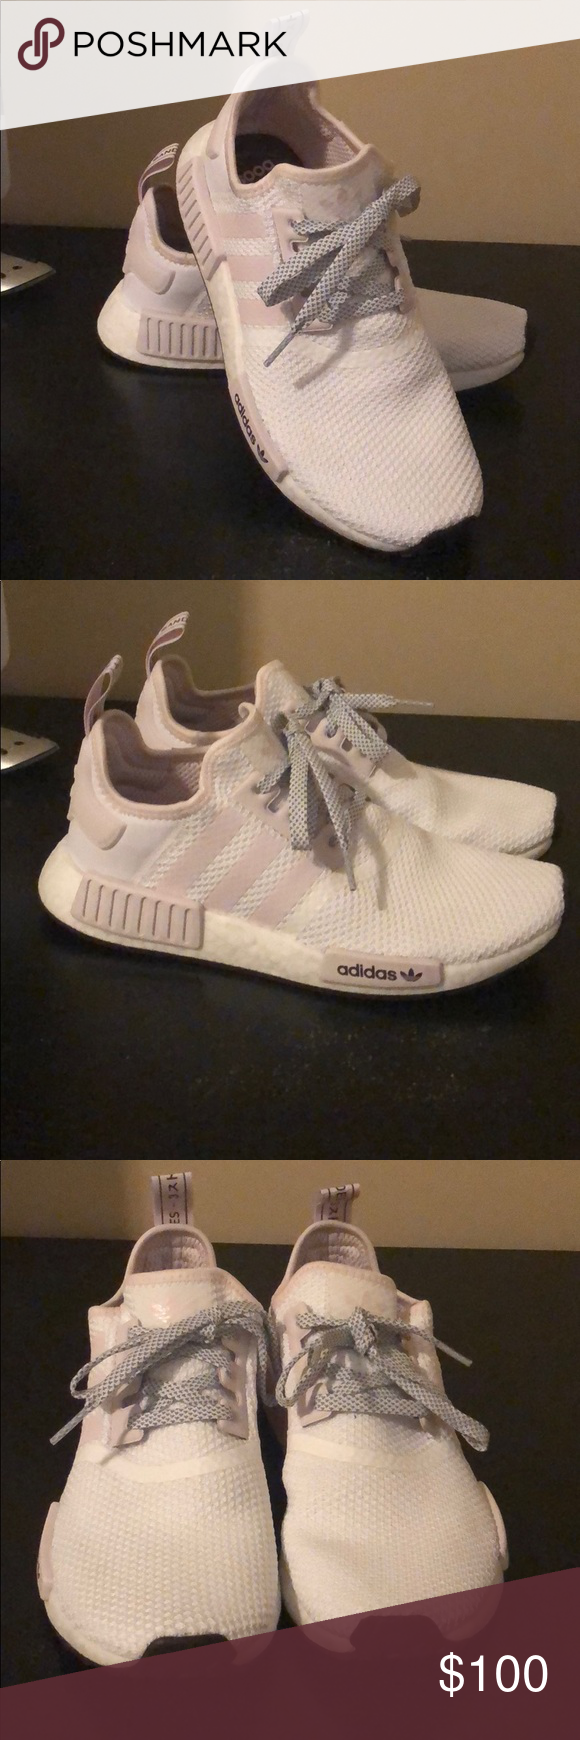 a18f16a9b3 Adidas NMD_R1 Women's Women's size 8.5 Cloud White/Orchid Tint/Night Red  Excellent Condition Worn twice adidas Shoes Sneakers